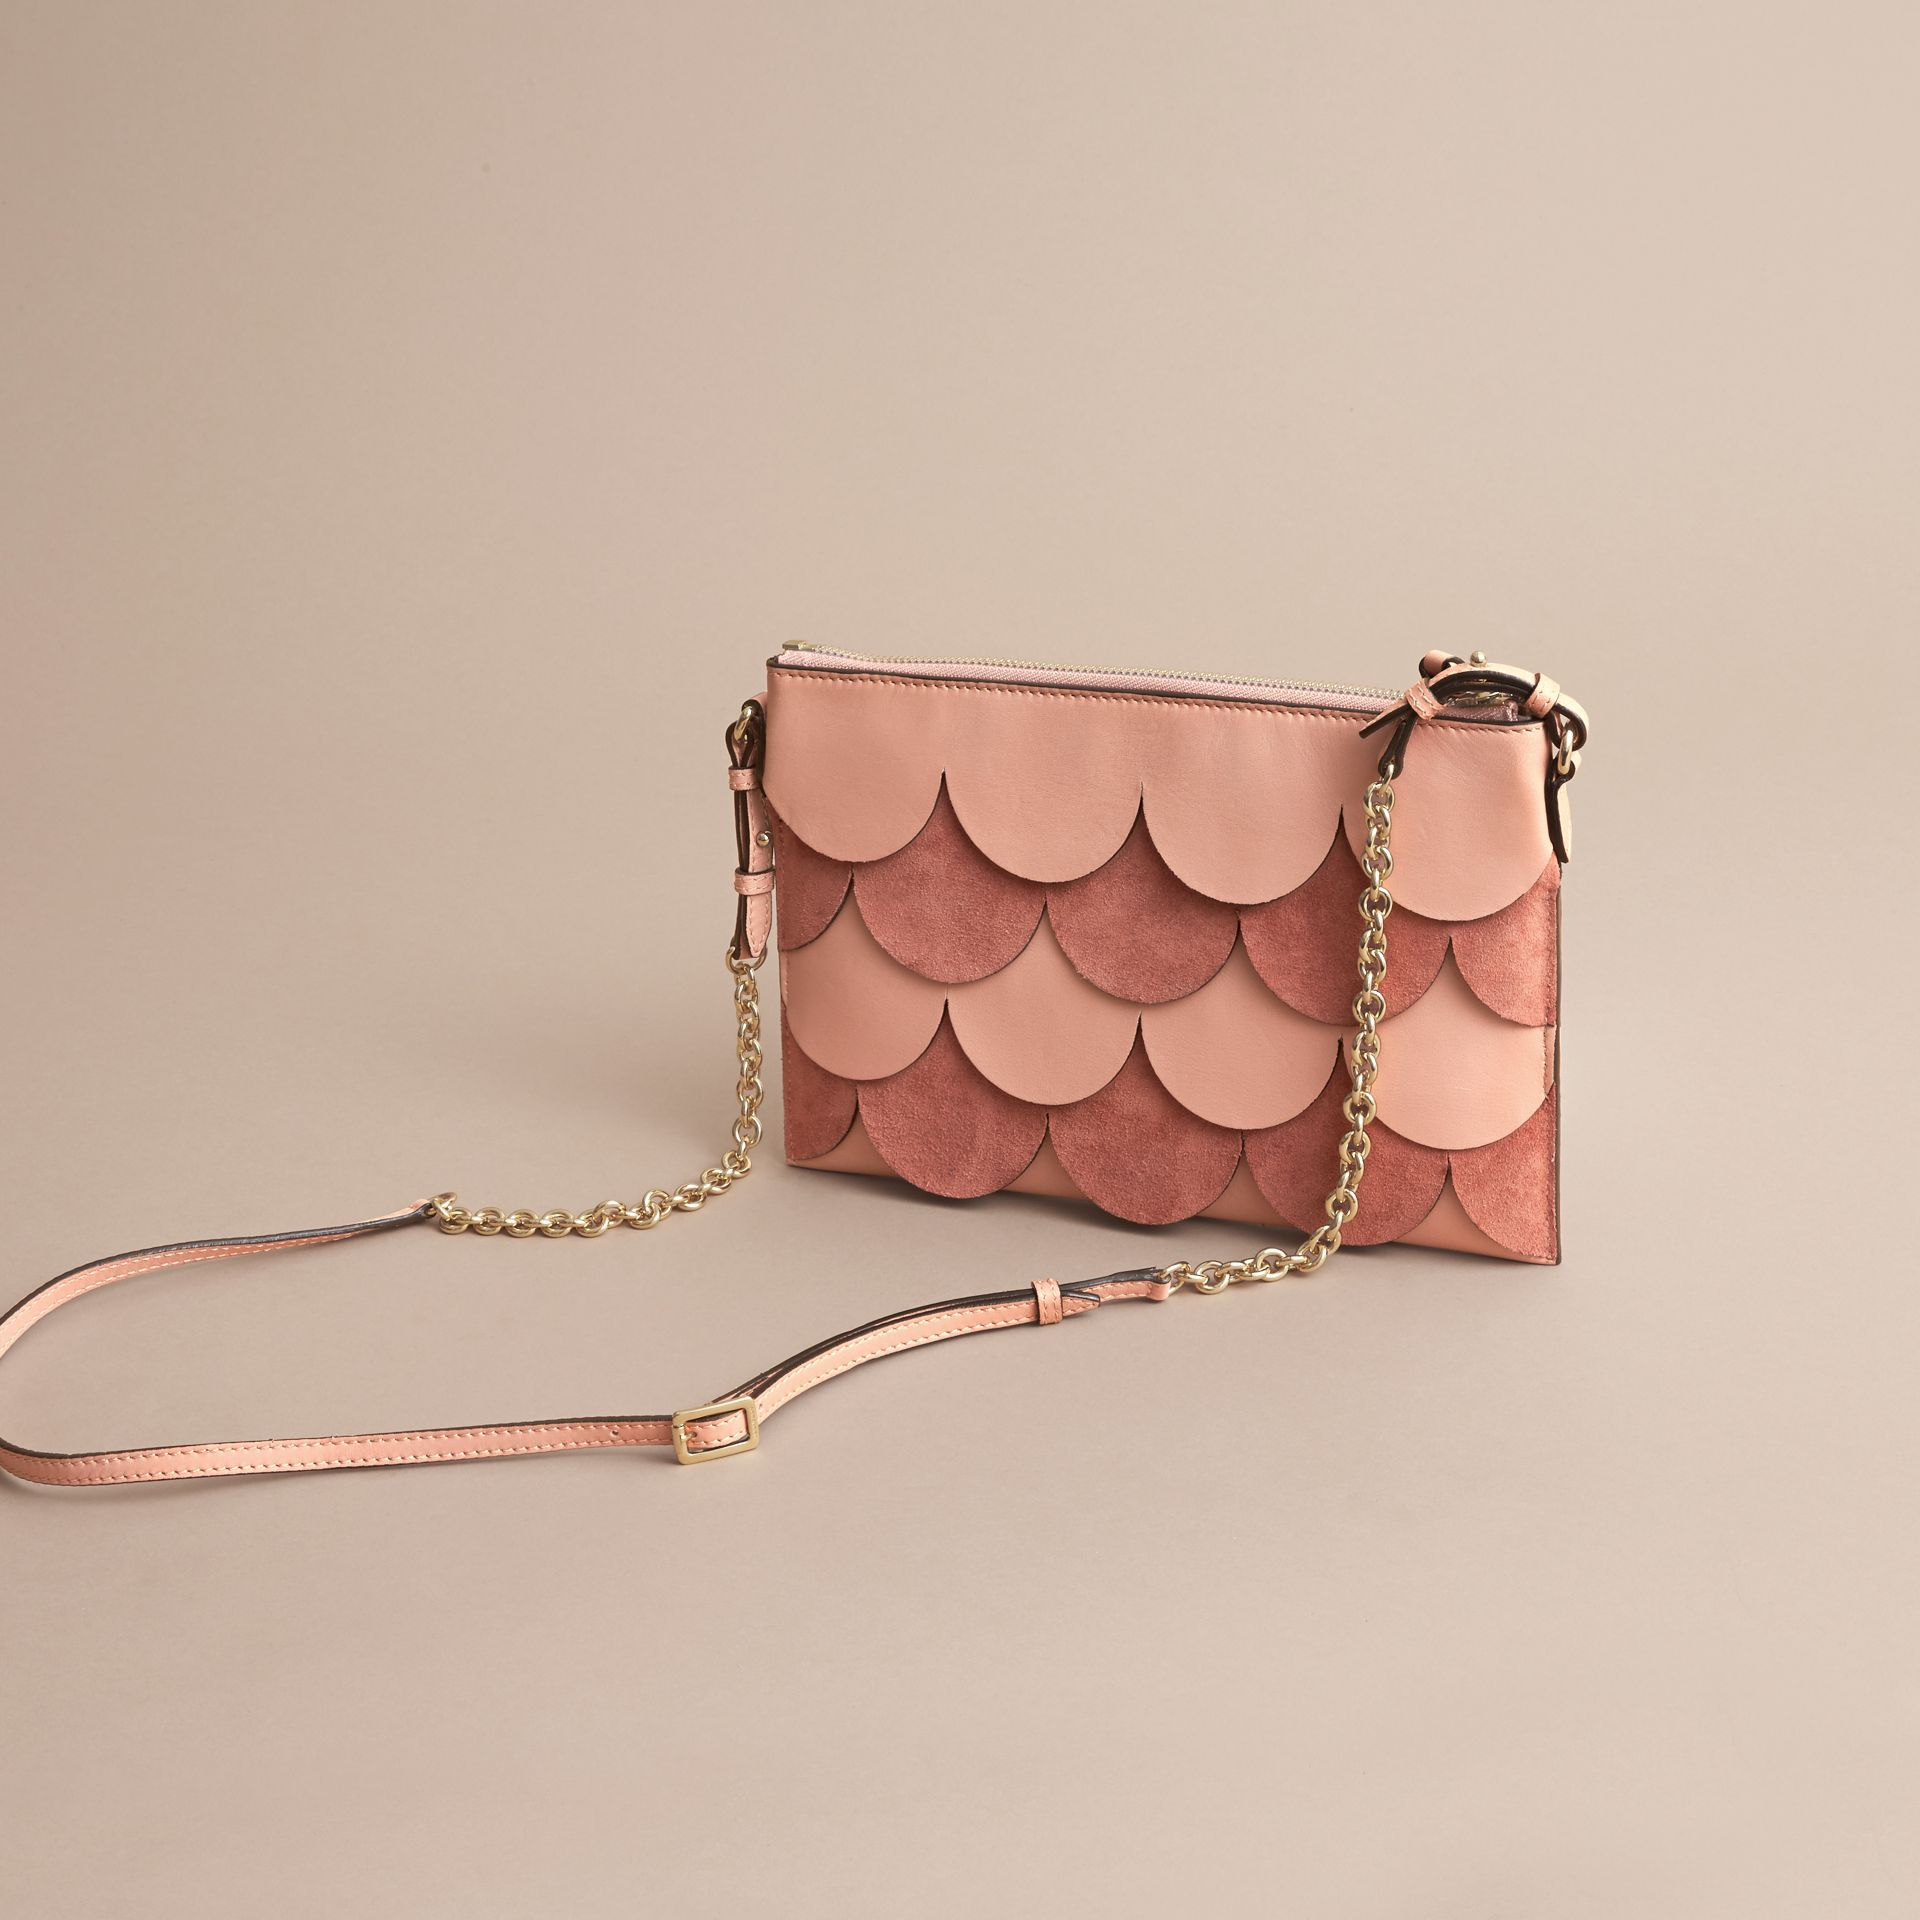 Two-tone Scalloped Leather and Suede Clutch Bag in Ash Rose - Women | Burberry United Kingdom - gallery image 5